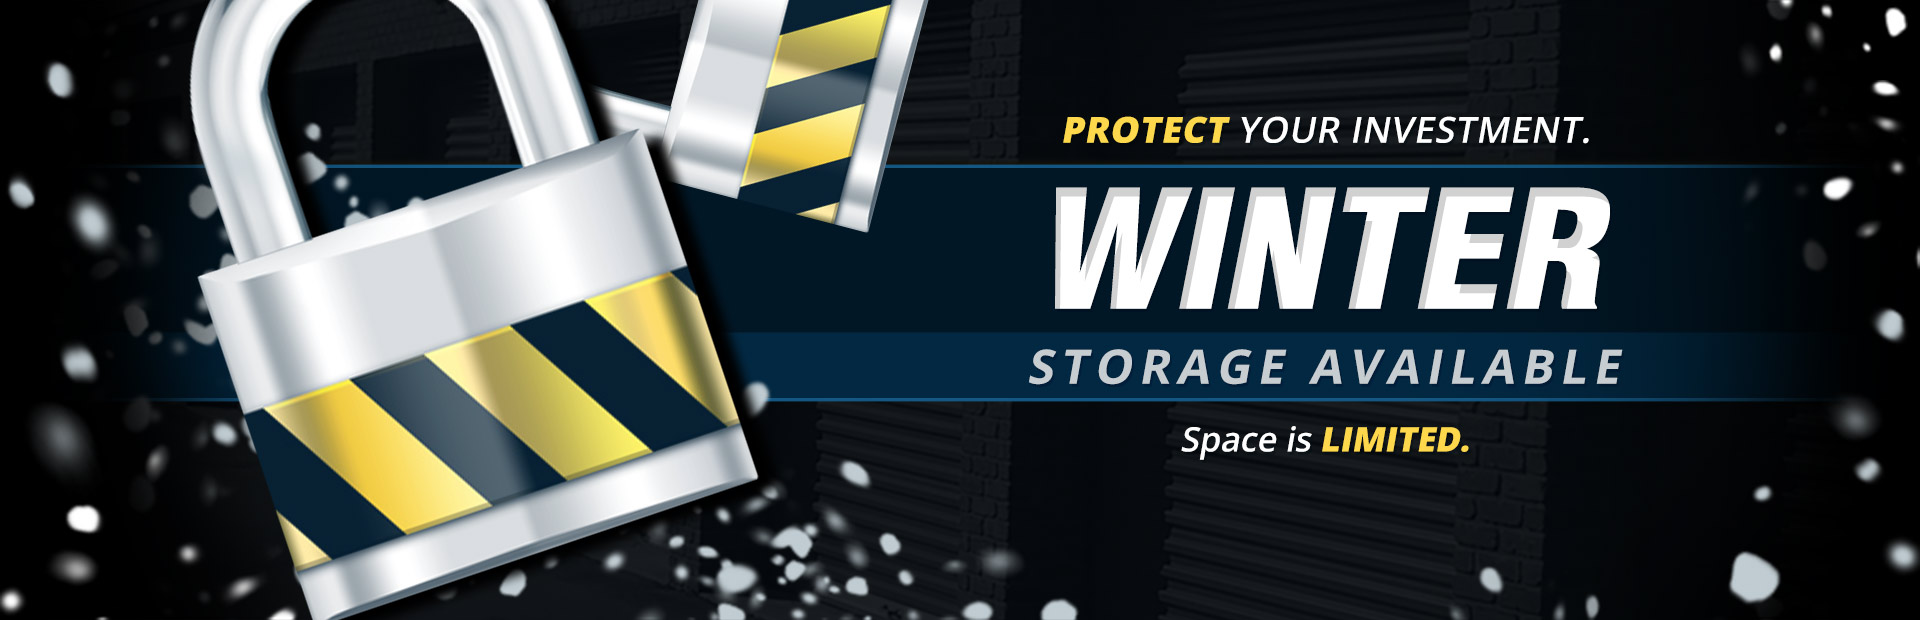 Protect your investment. Winter storage is available. Contact us for details.